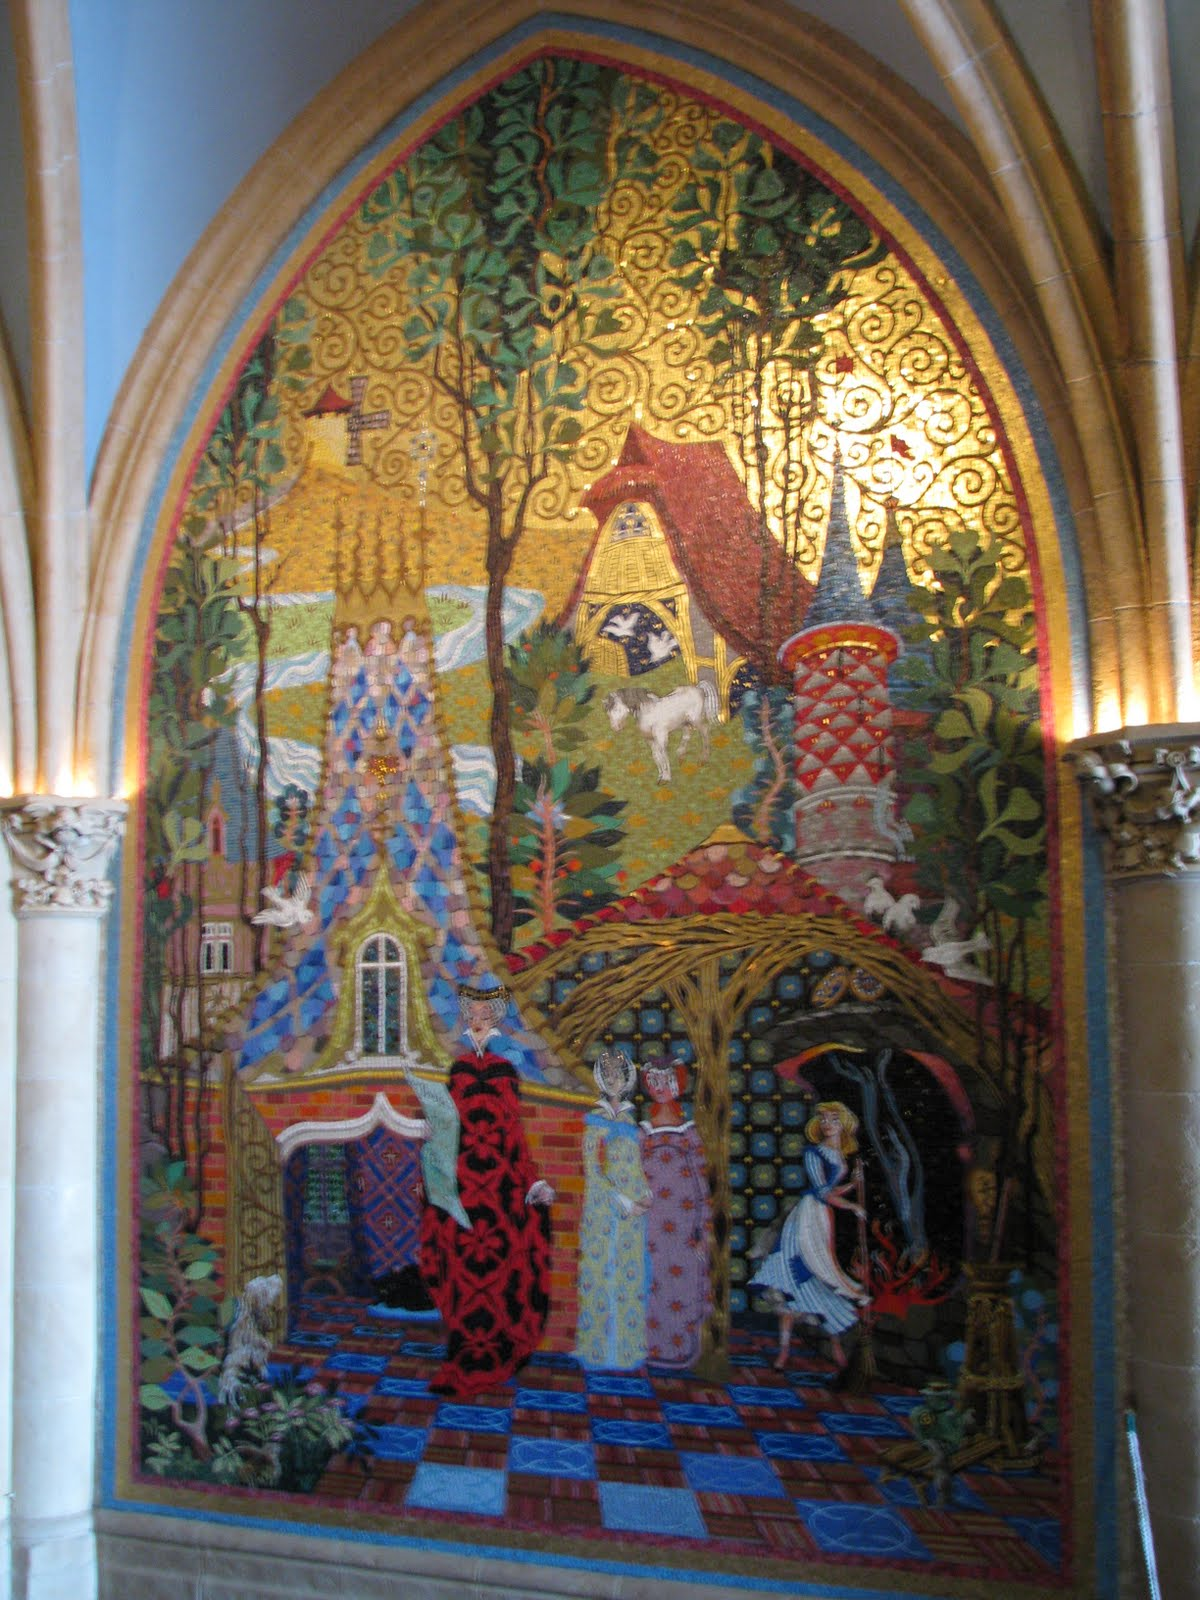 Cinderella castle mosaics in the magic kingdom disney for Cinderella castle mural